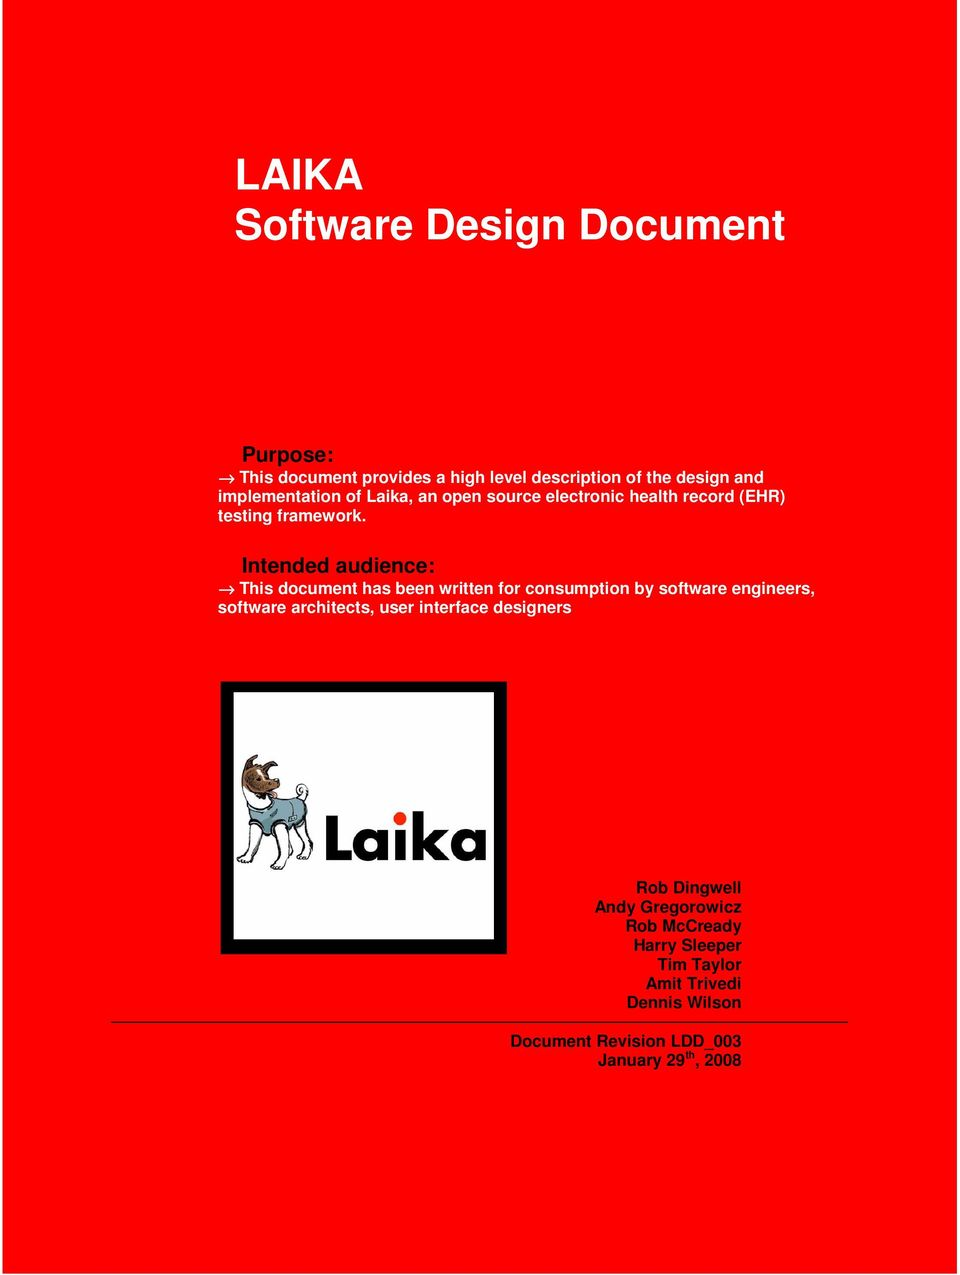 Intended audience: This document has been written for consumption by software engineers, software architects, user interface